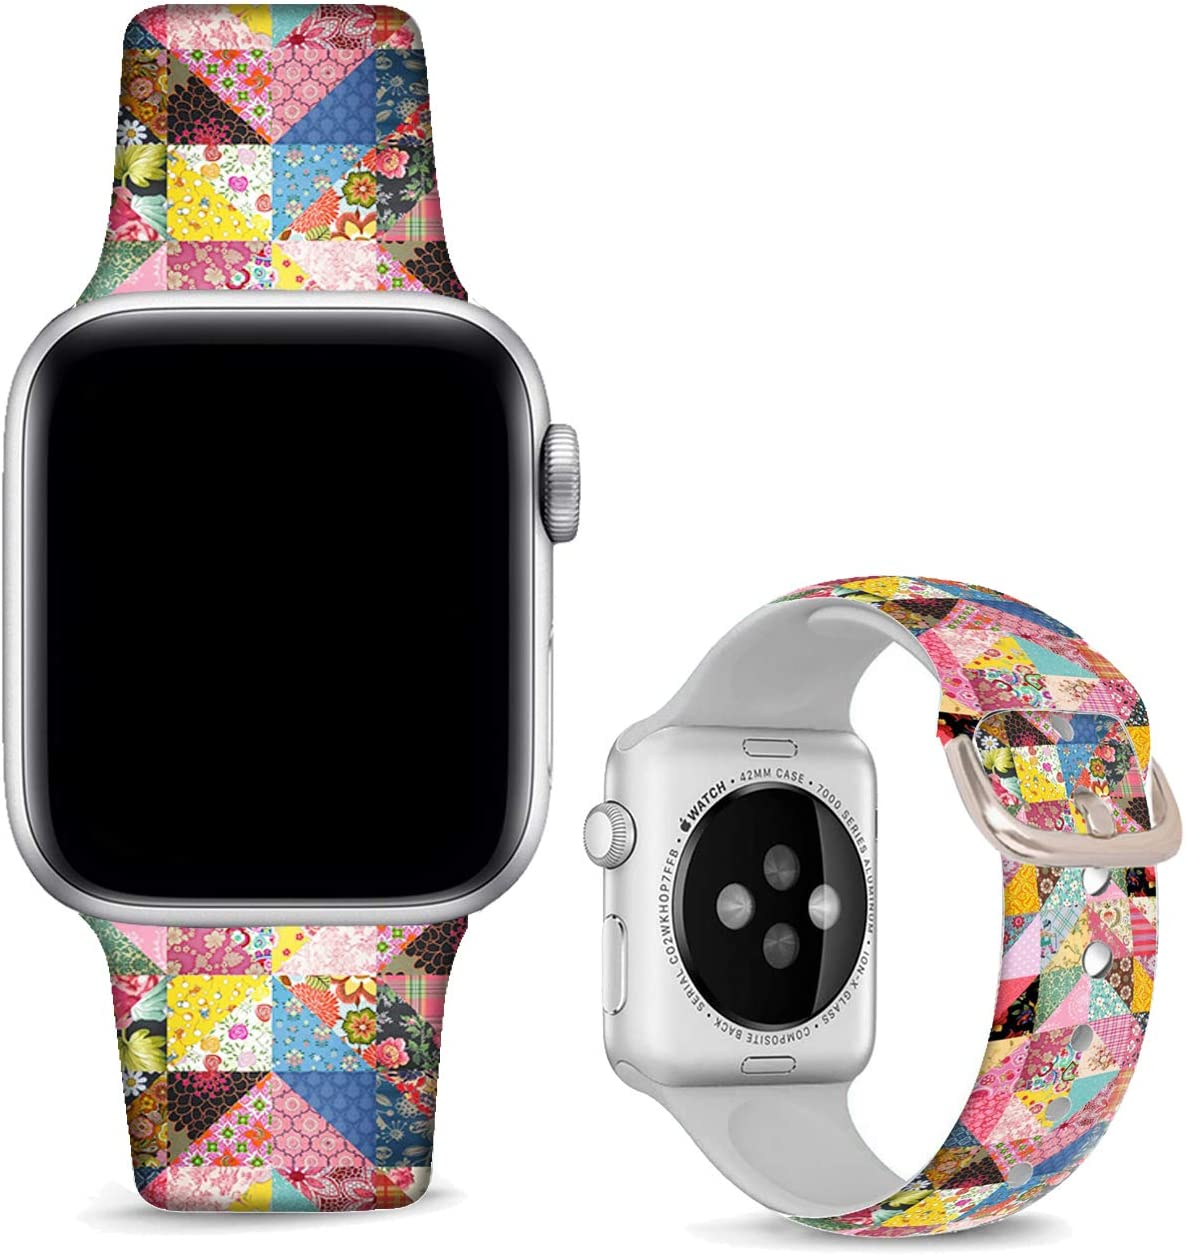 DOO UC Christmas Floral Watch Bands Compatible with Apple Watch 38mm/40mm, Floral Chevron Silicone Fadeless Pattern Printed Replacement Bands for iWatch Series 5 4 3 2 1